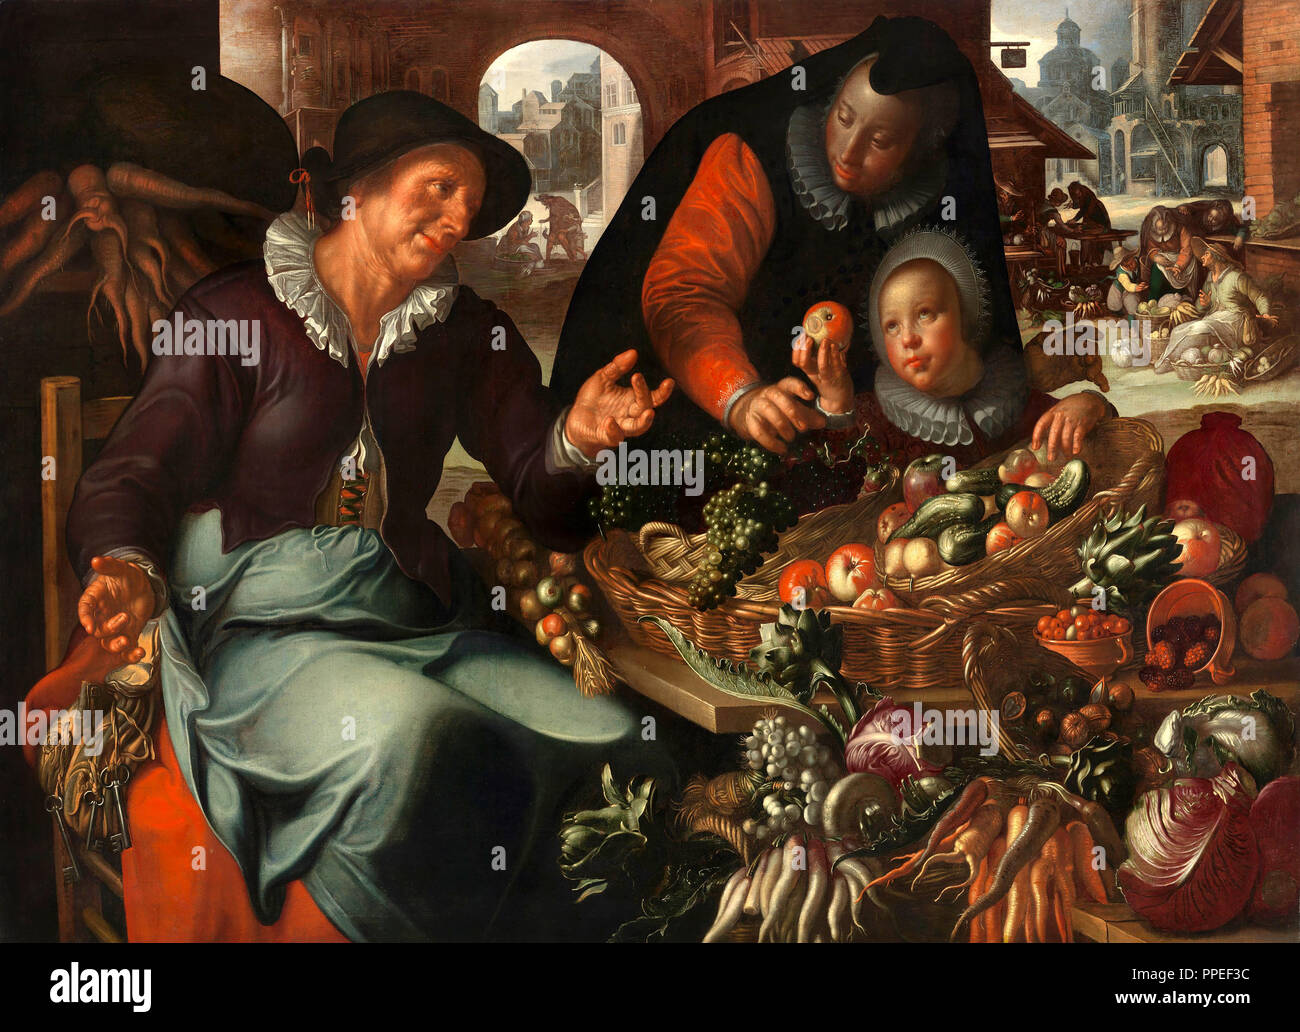 Joachim Wtewael, The Fruit and Vegetable Seller. Circa 1618. Oil on canvas. Centraal Museum in Utrecht, Netherlands. - Stock Image